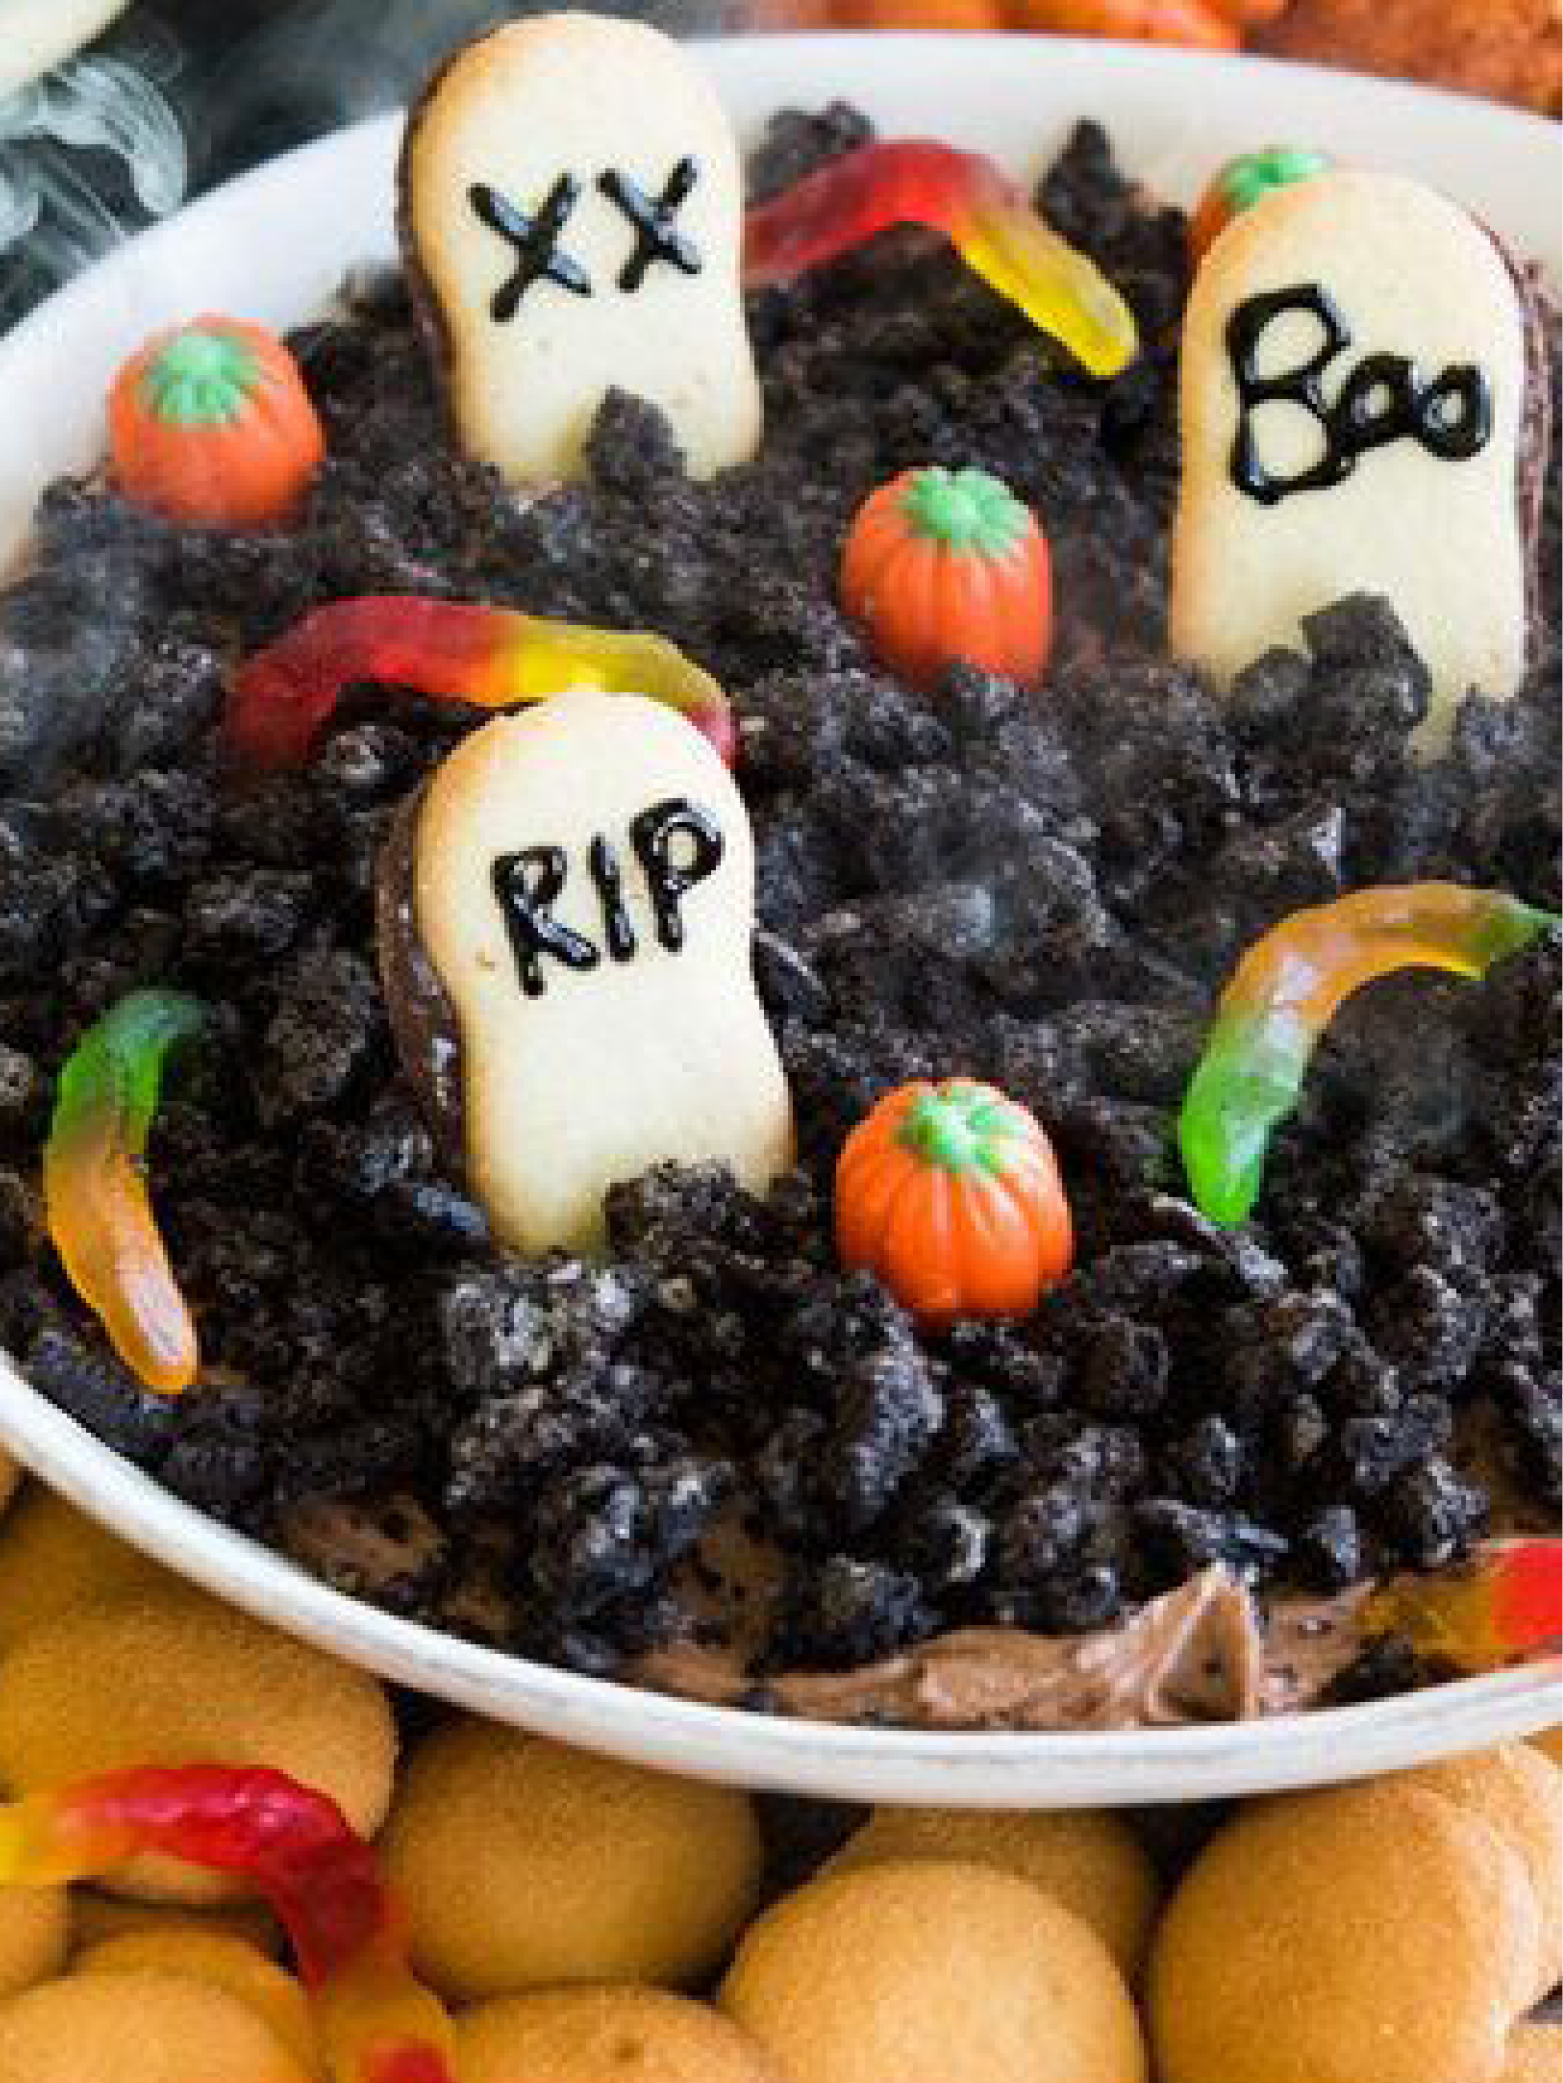 How To Make A Graveyard-Themed Dessert Dip For Halloween  Buzzfeed